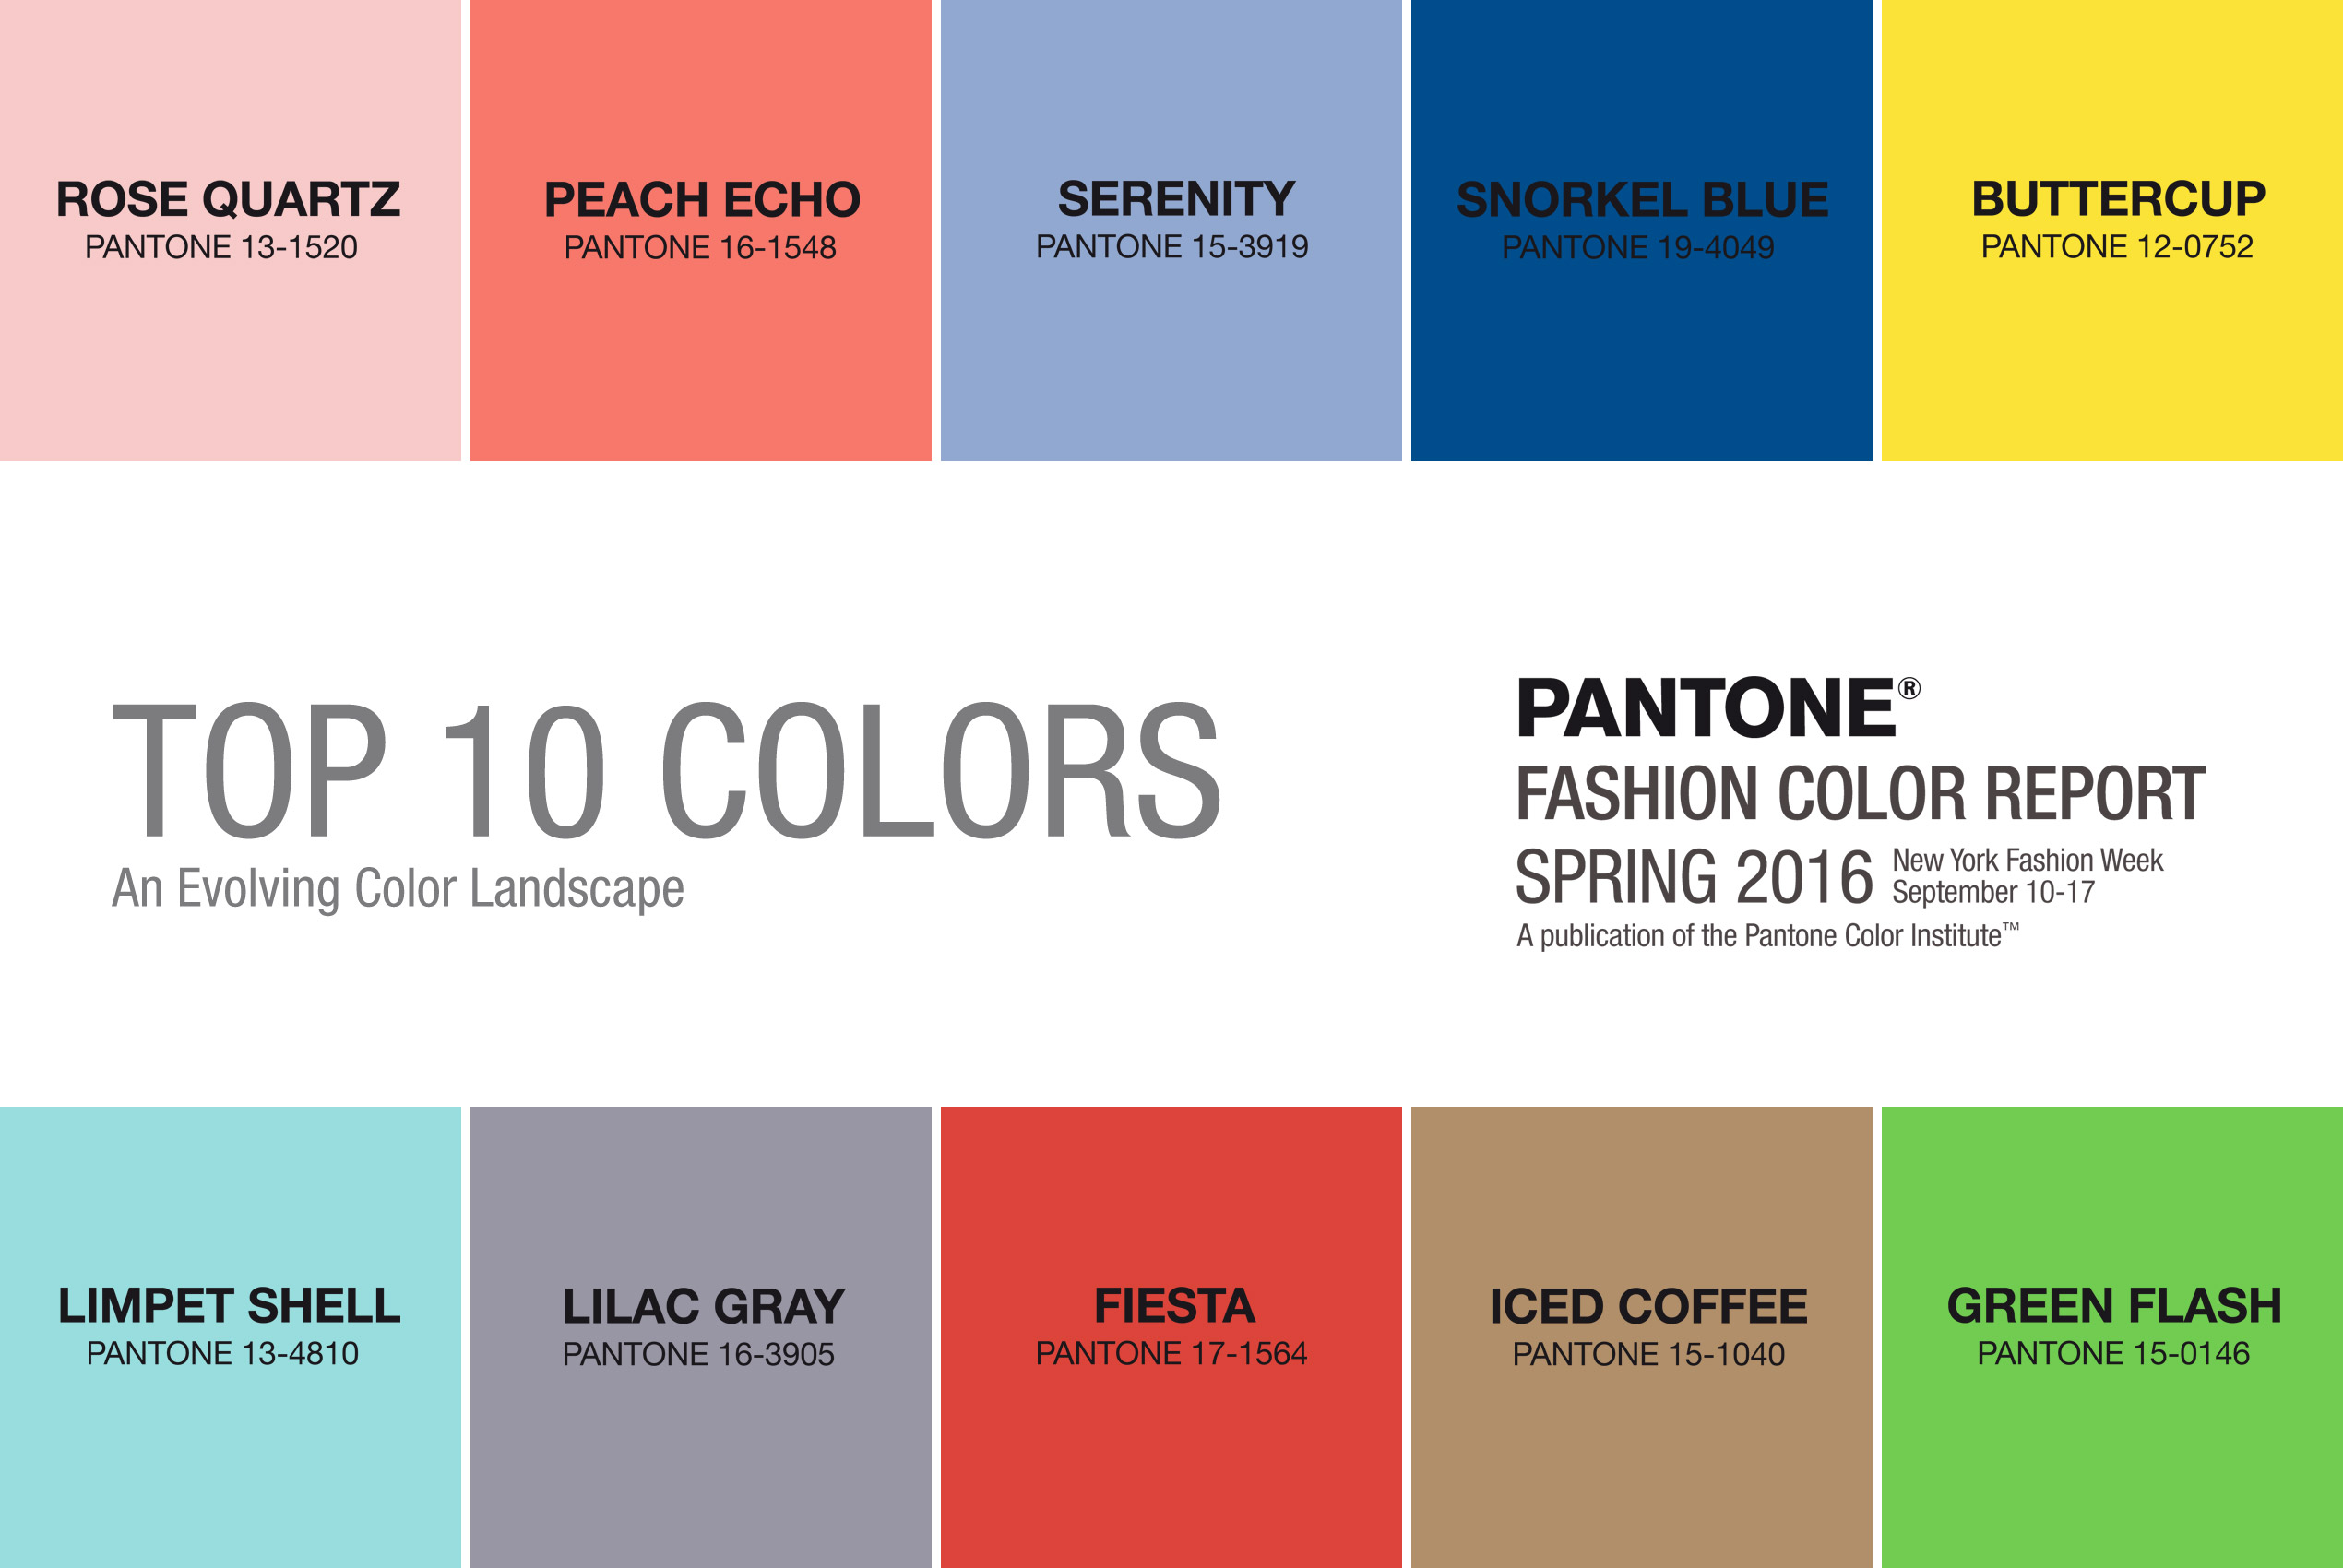 Pantone's Spring/Summer 2016 colors